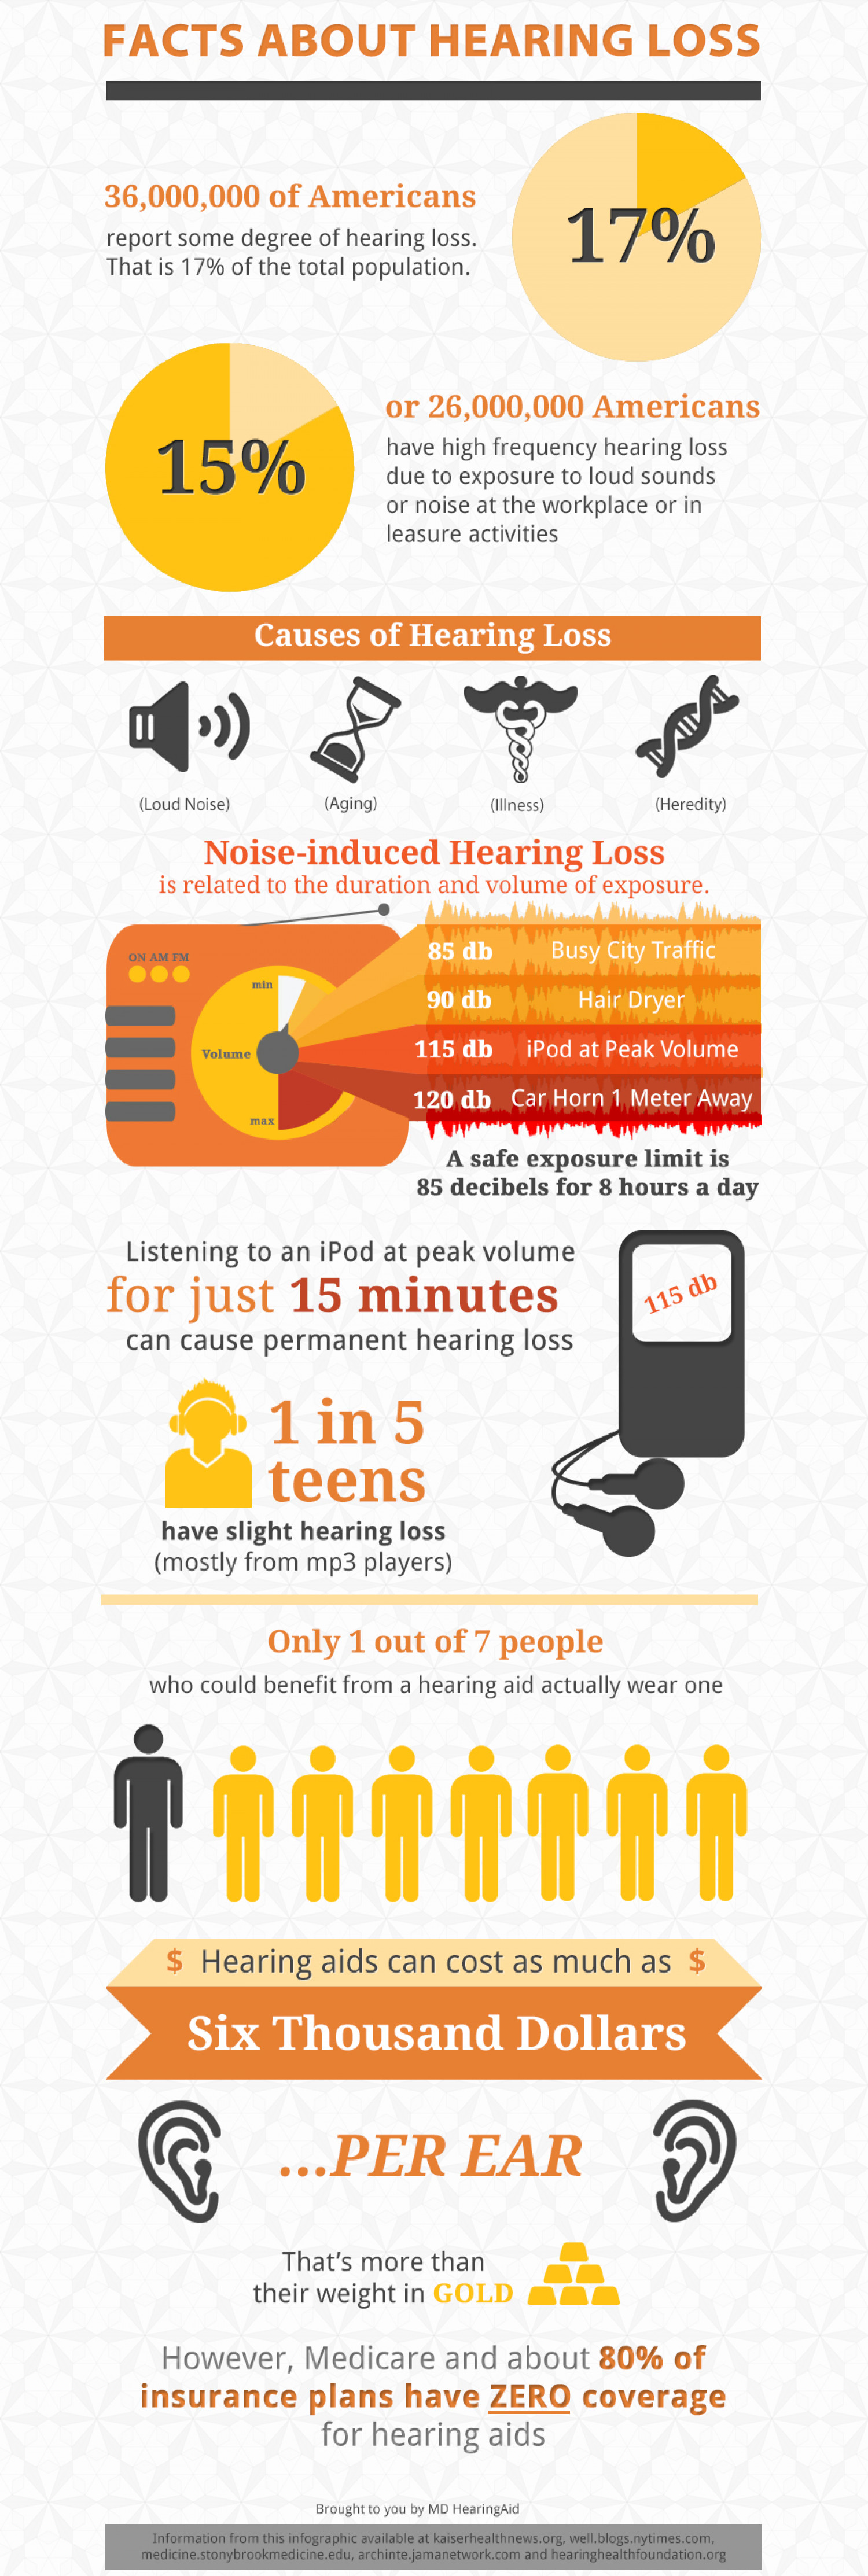 Facts About Hearing Loss Infographic